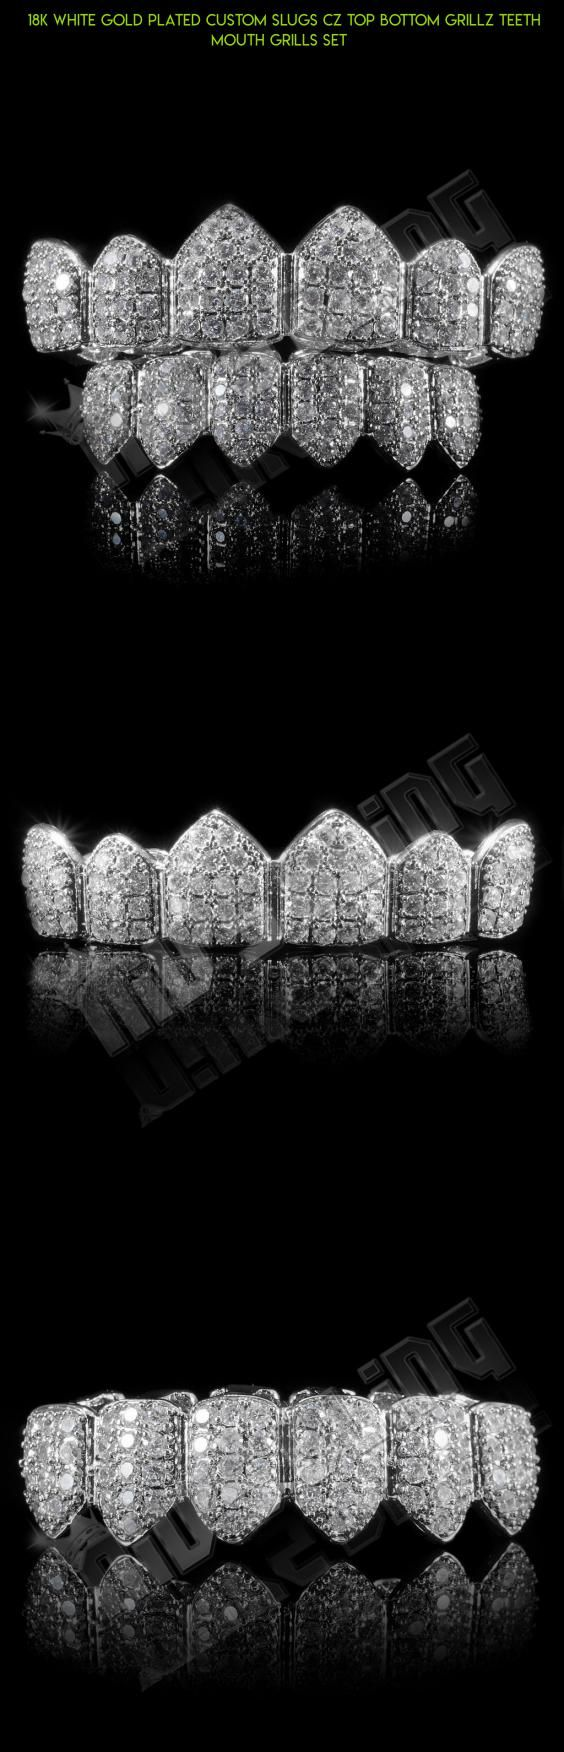 18K White Gold Plated Custom Slugs CZ Top Bottom GRILLZ Teeth Mouth Grills Set  #camera #drone #tech #bottom #kit #grills #racing #teeth #products #gadgets #plans #fpv #parts #shopping #technology